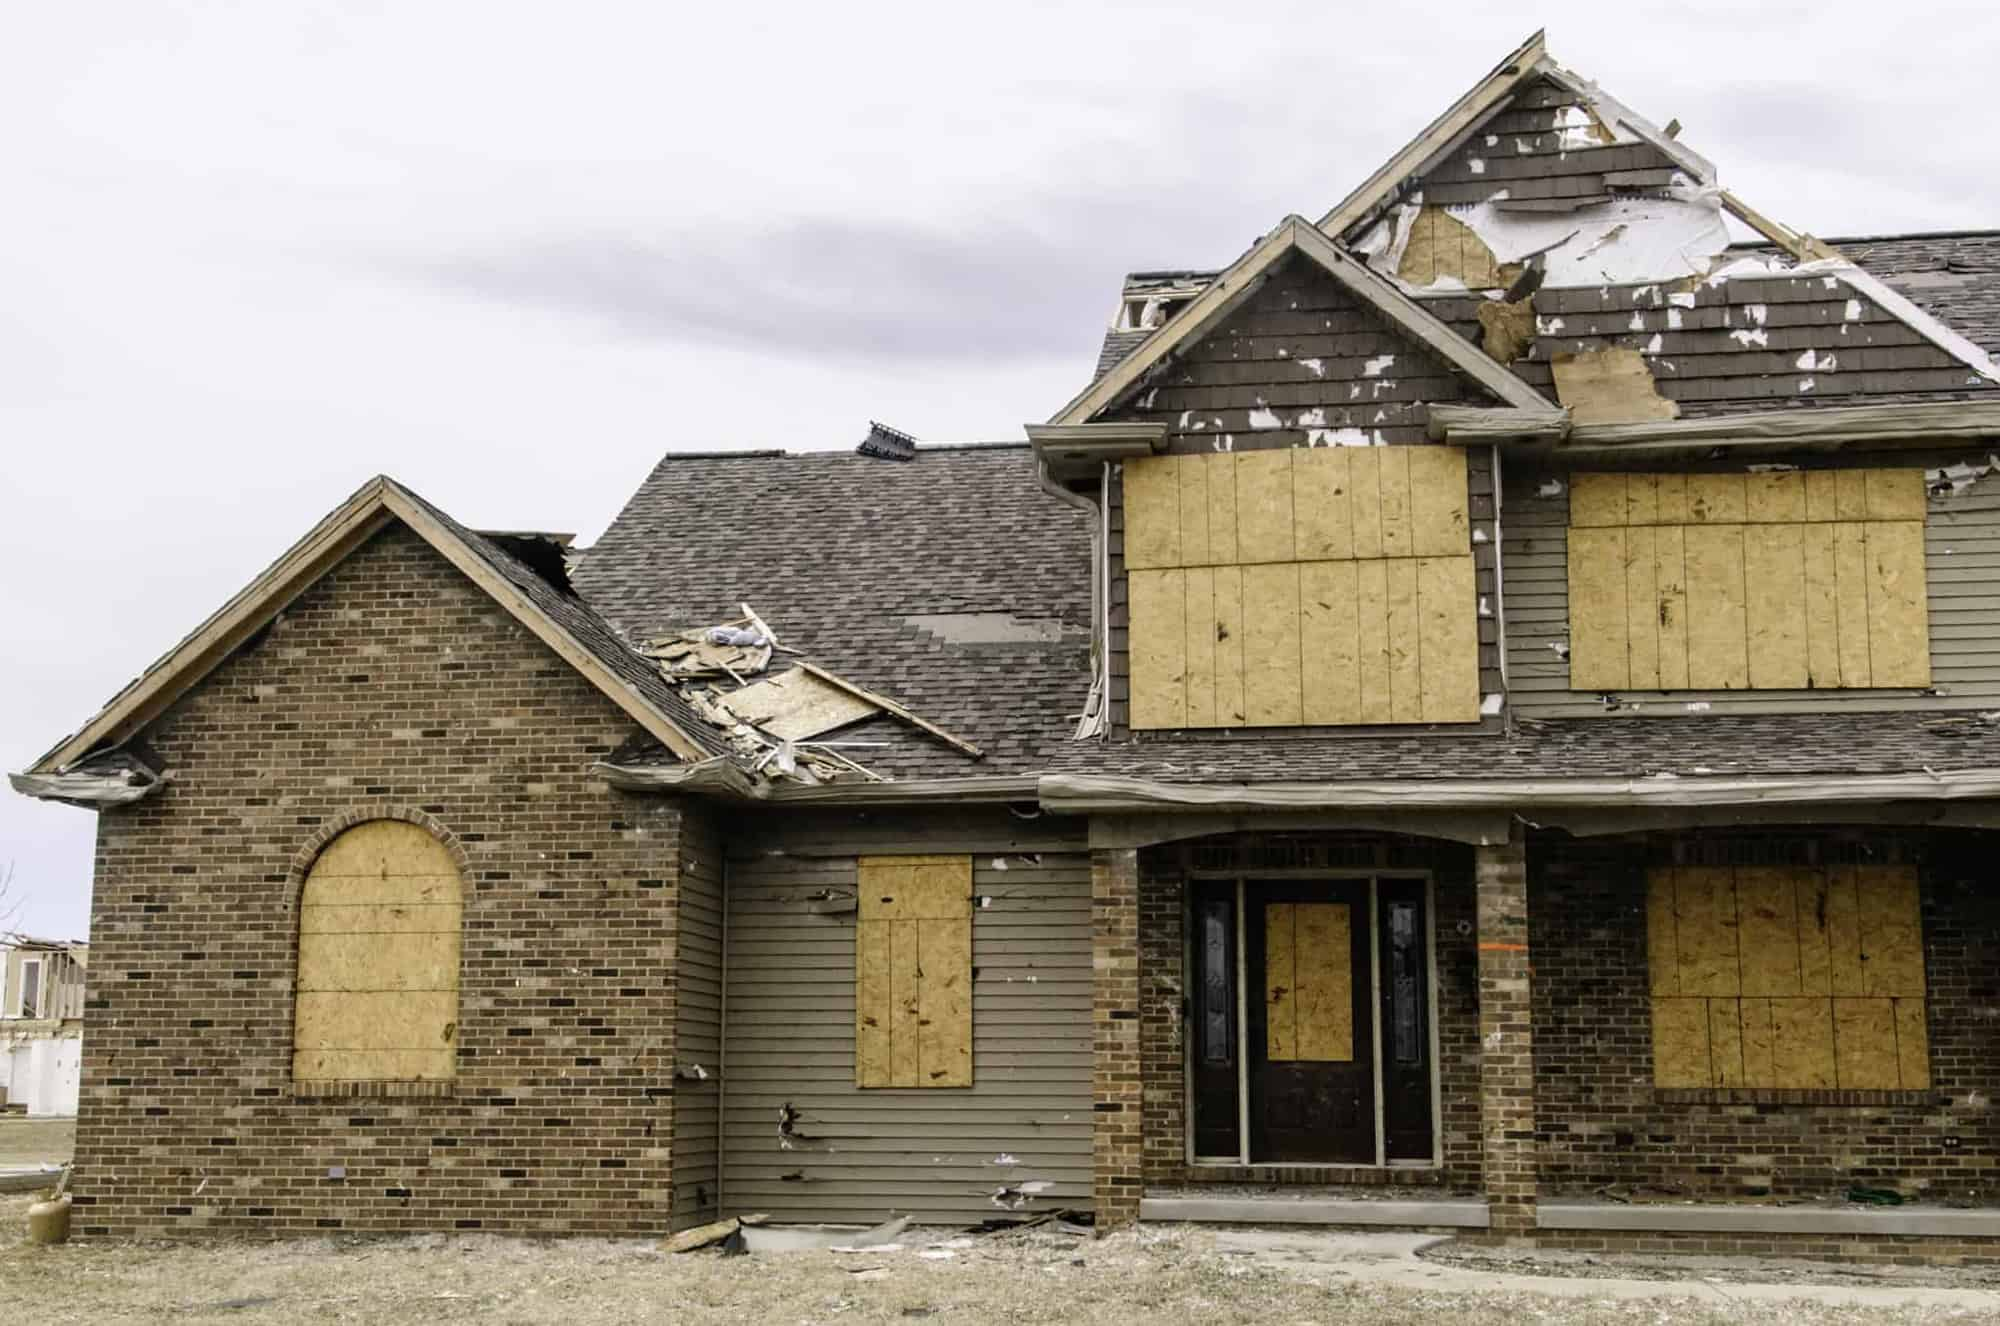 CleanMaster Services responds to and restores property damaged by hail, wind and storms